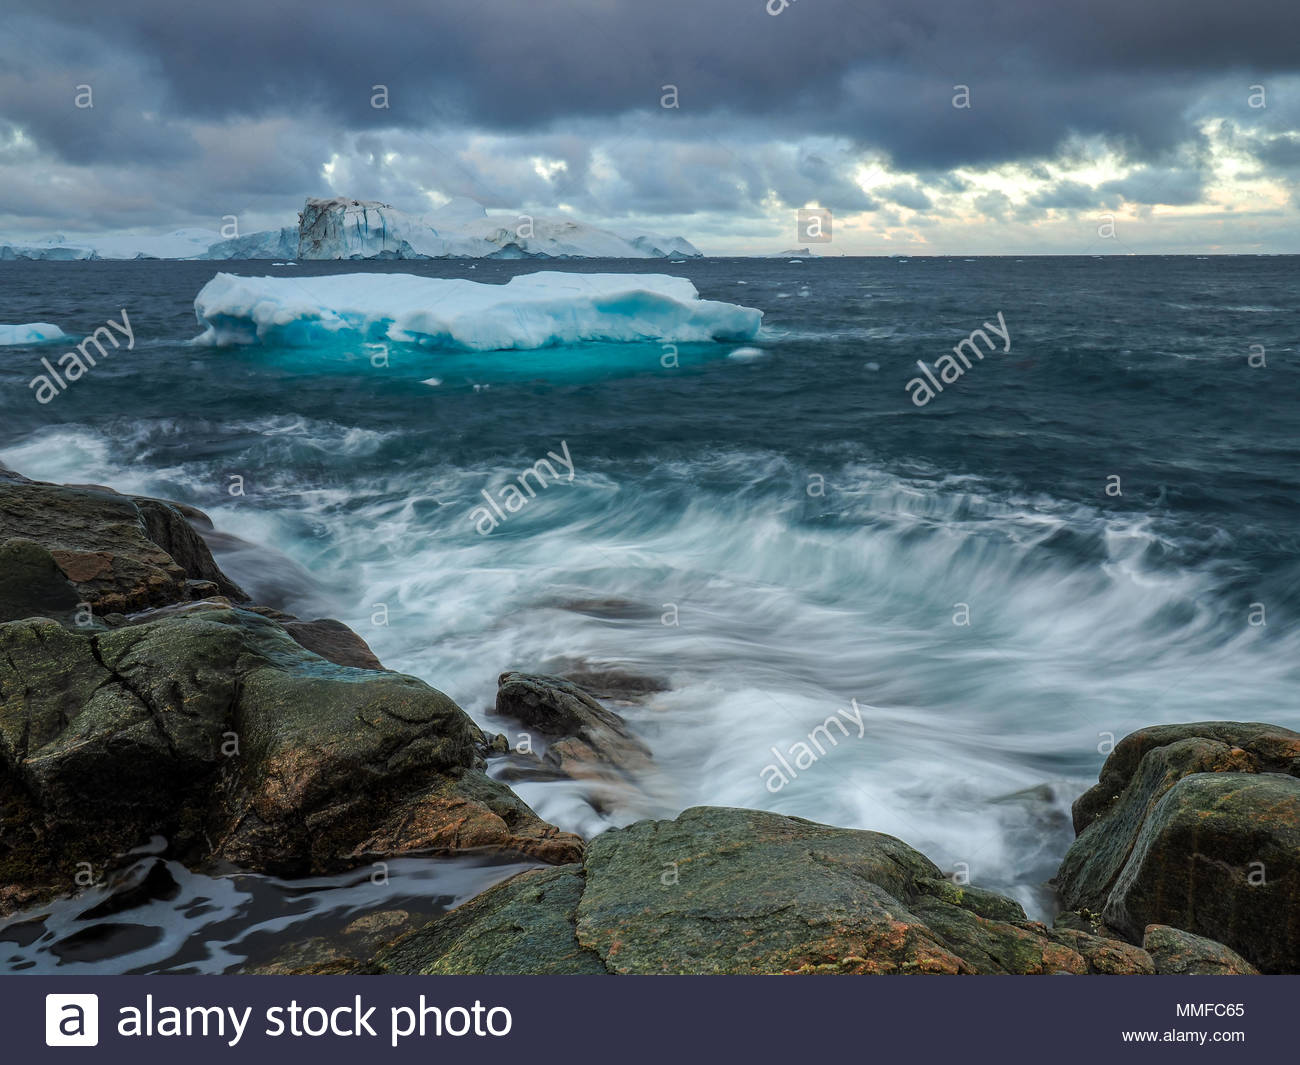 Iceberg floating on the ocean during windy weather. Icefiord UNESCO Herritage Site. - Stock Image